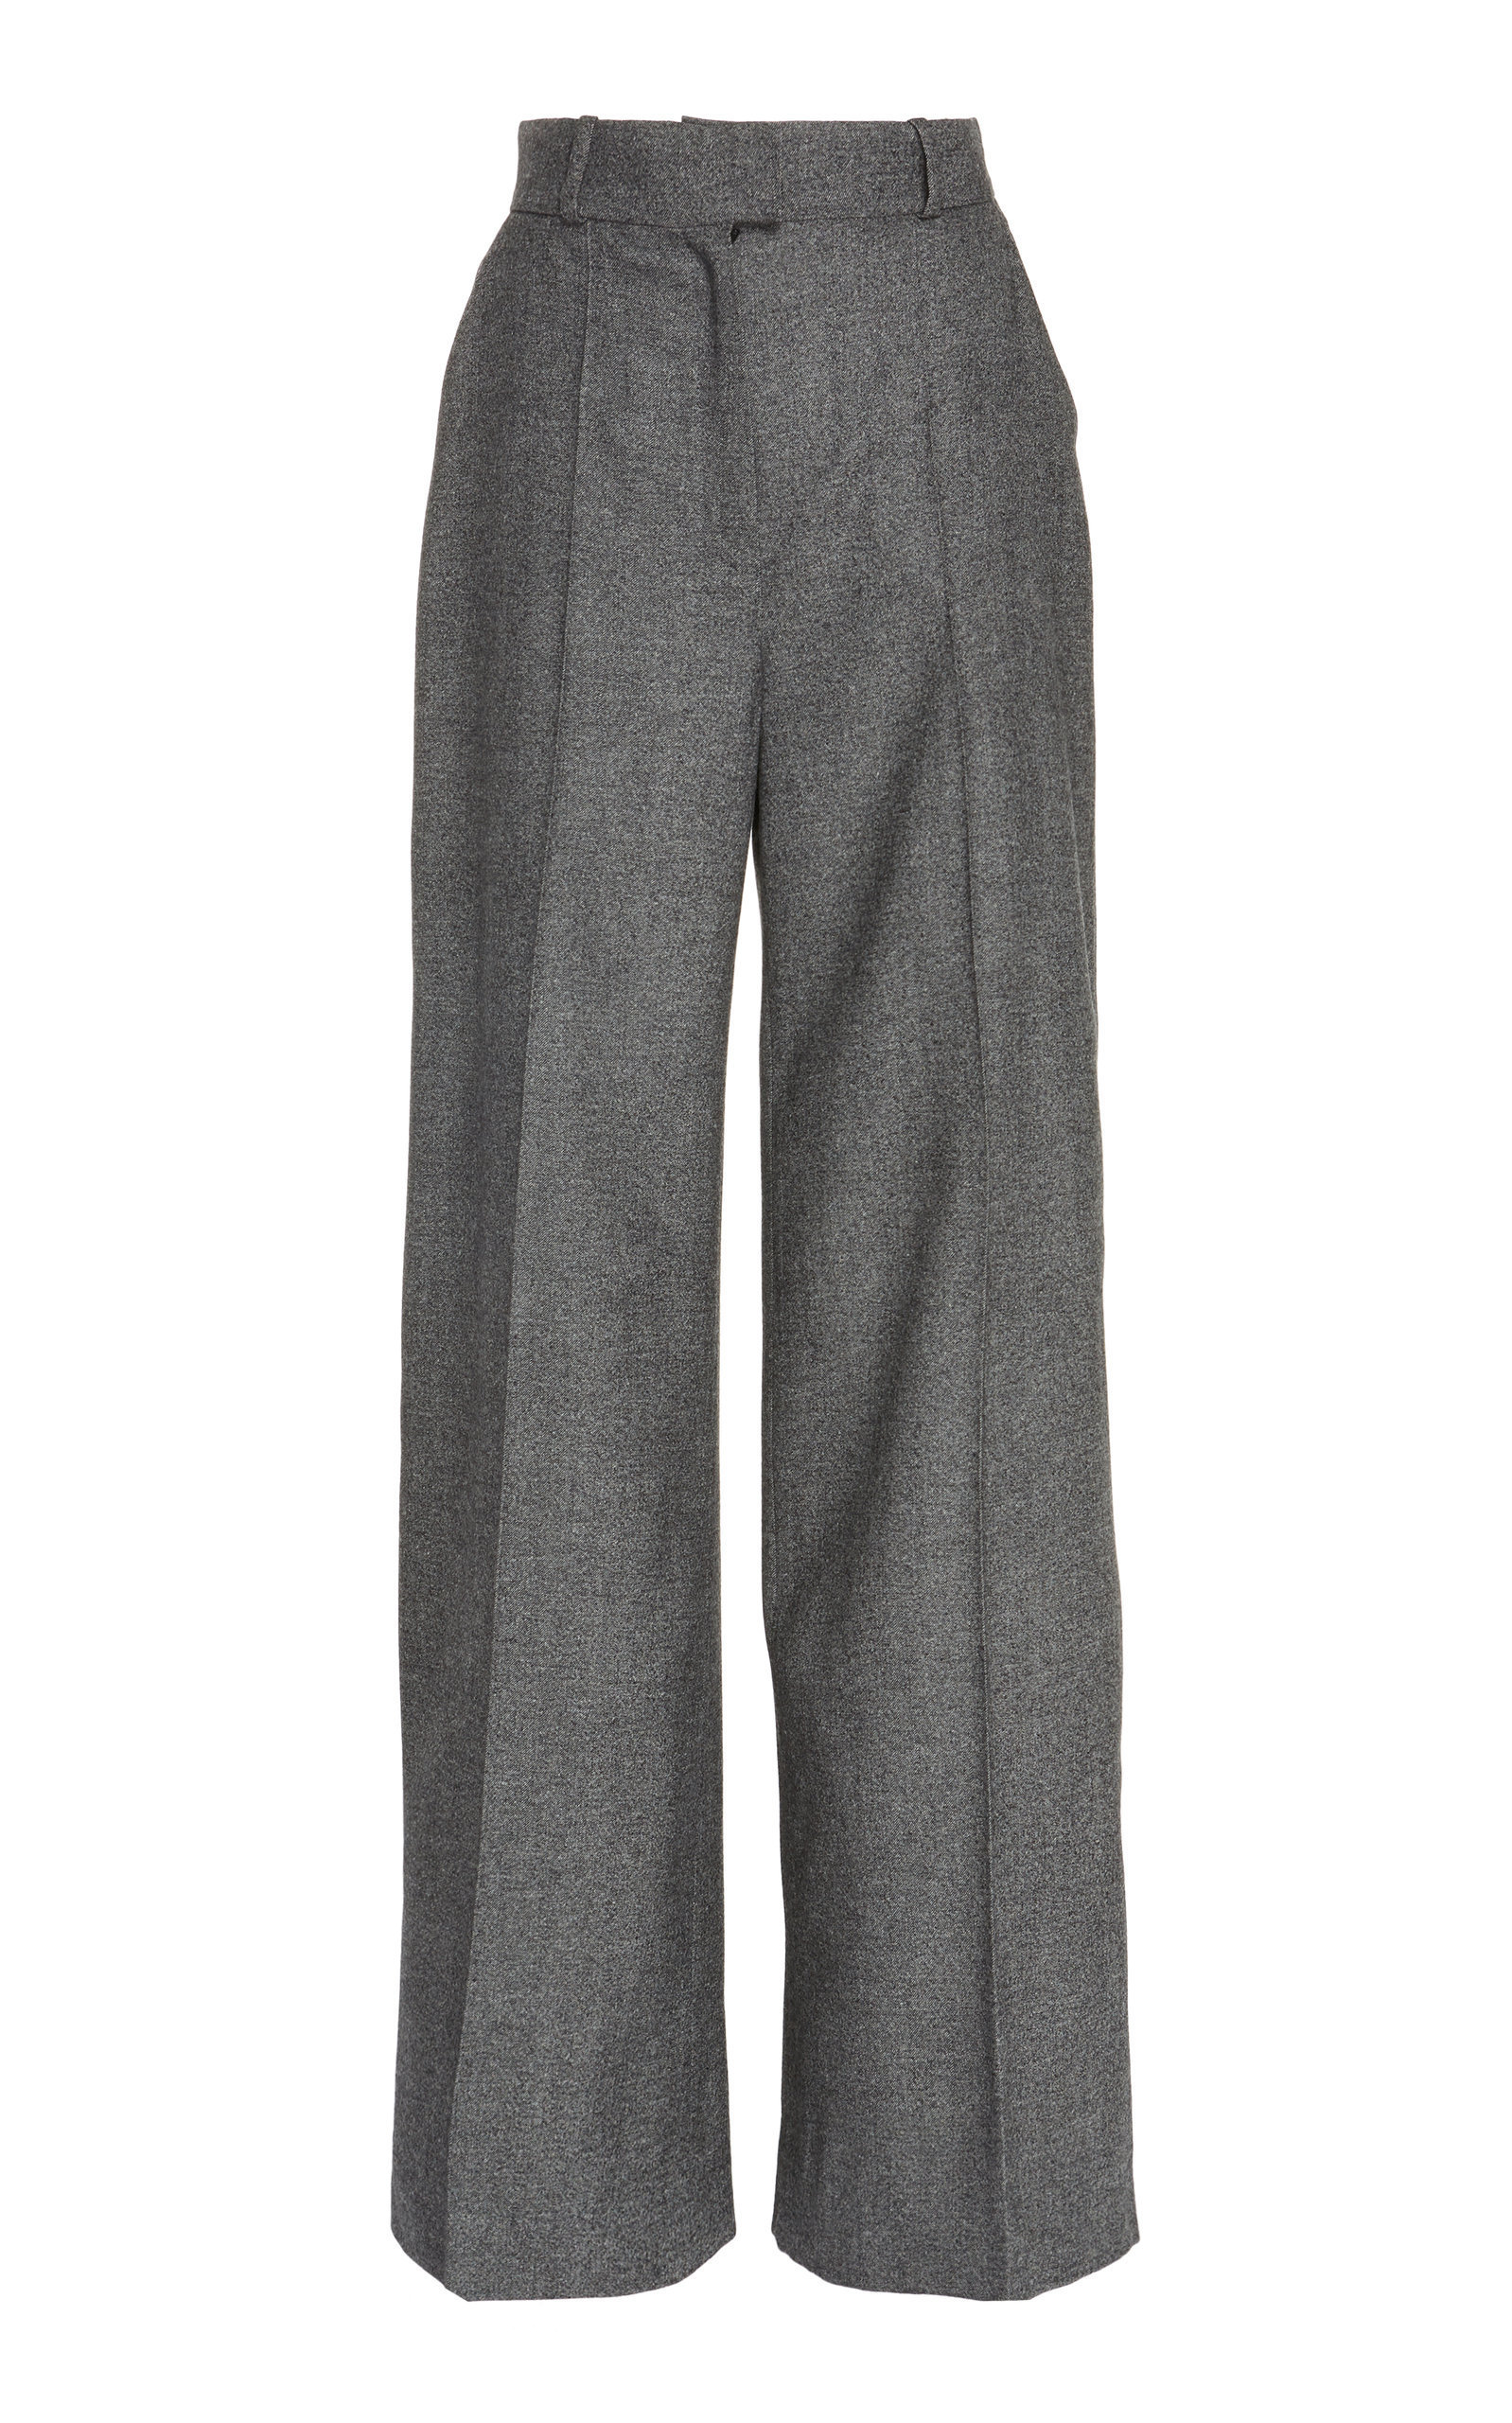 High Waist Virgin Wool Wide Leg Trousers